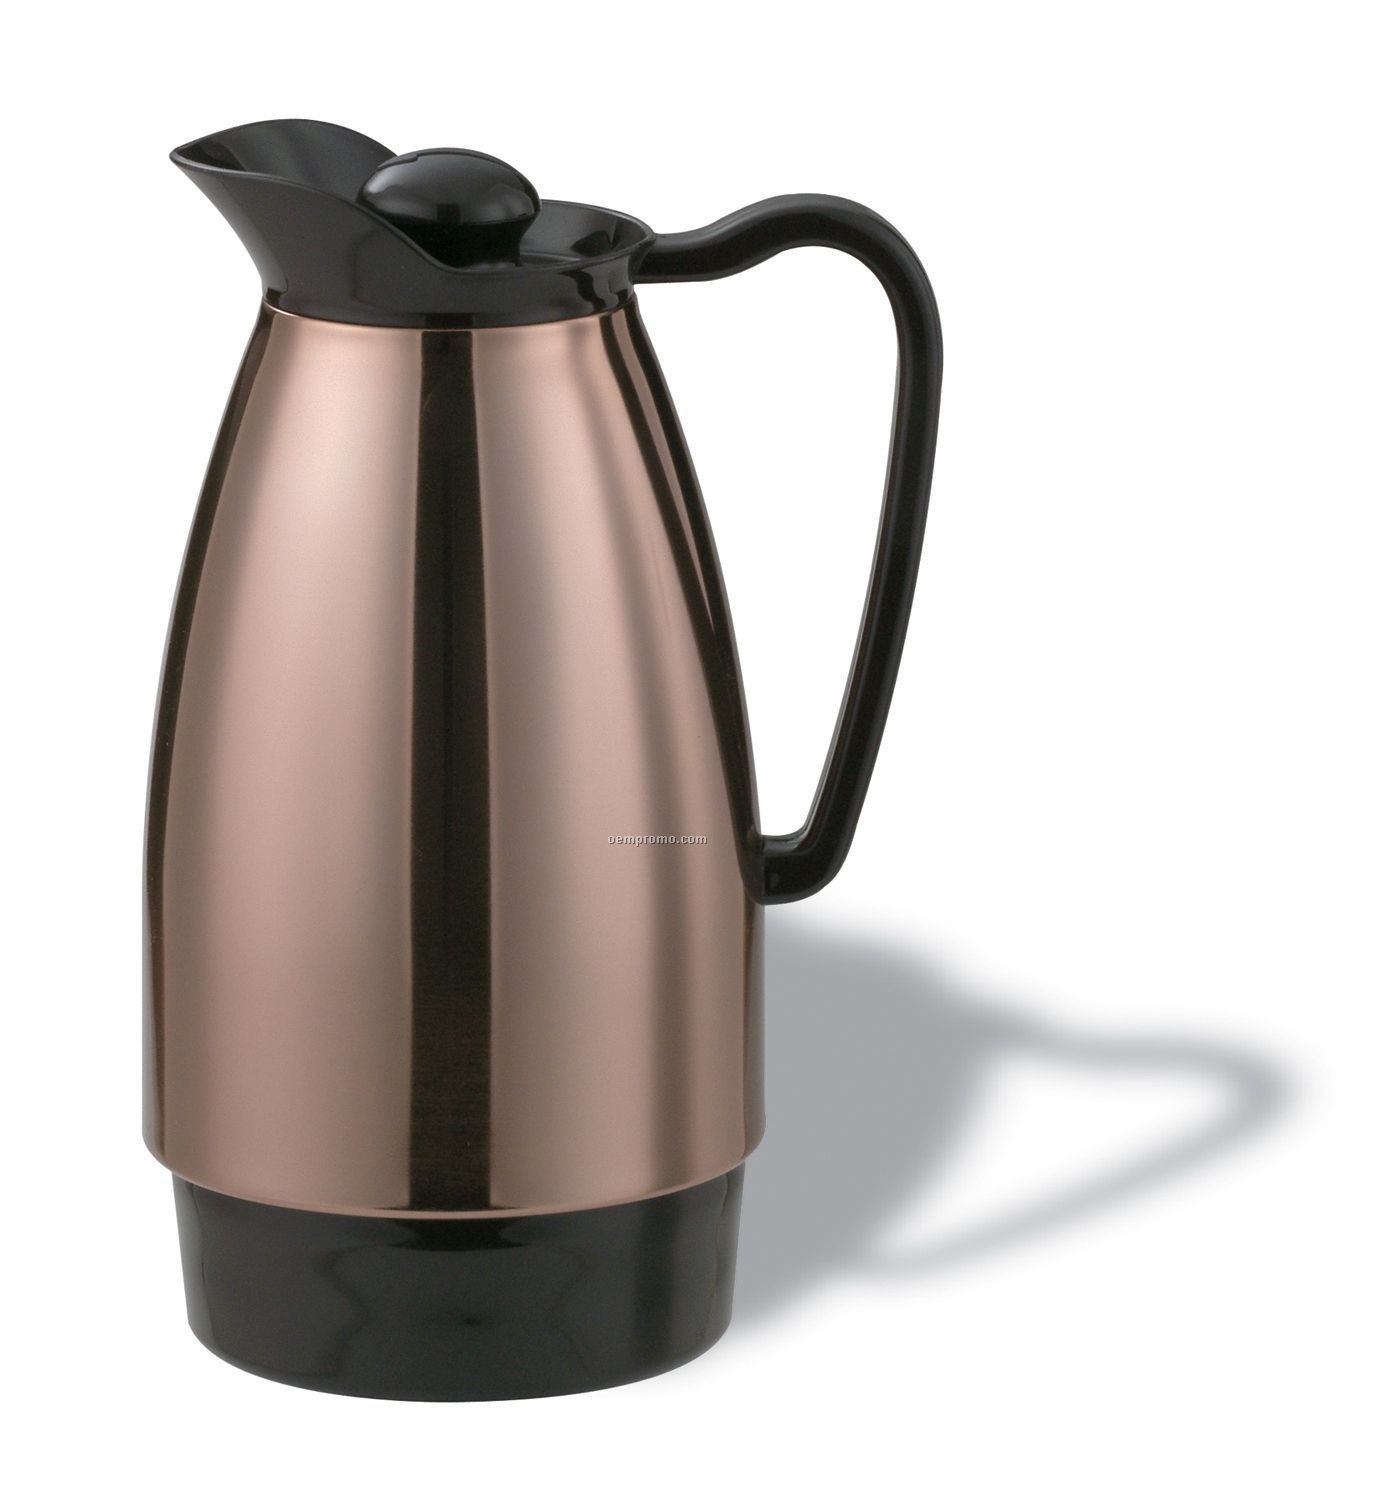 1 Liter Classic Glass Carafe Stainless Steel (Black)